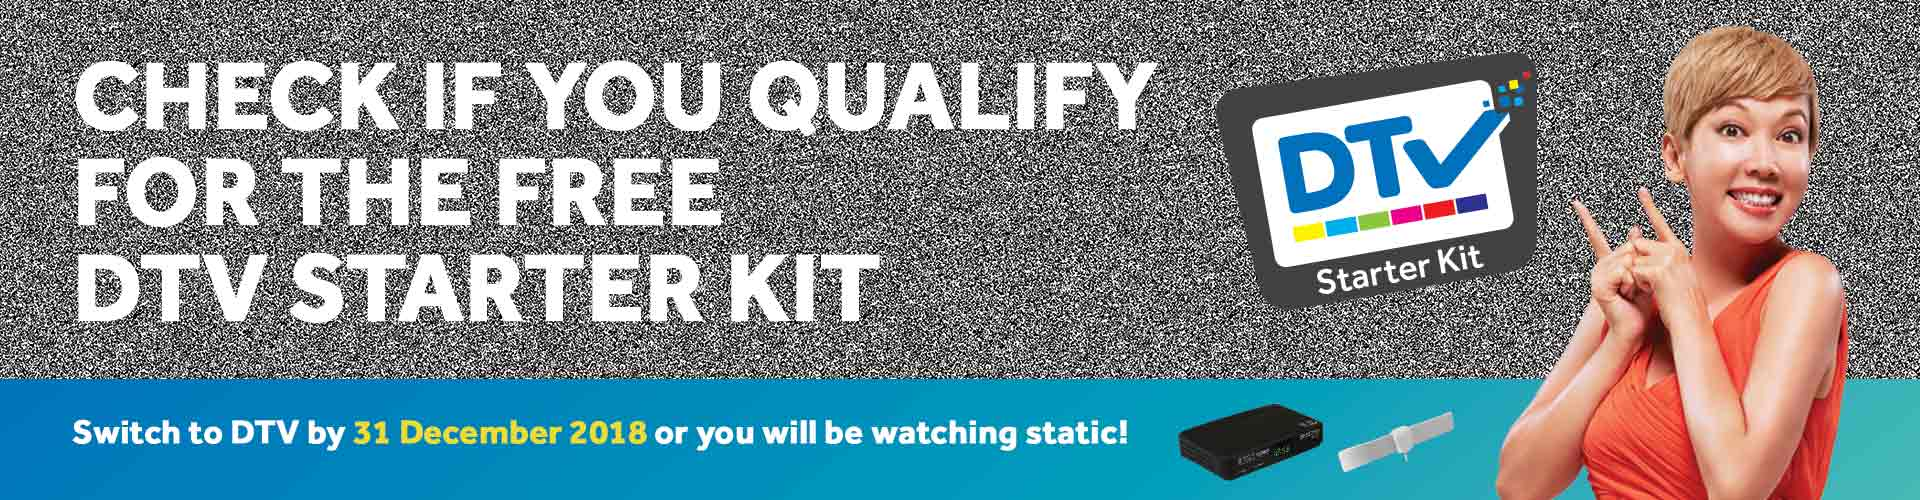 Digital TV (DTV) Starter Kit